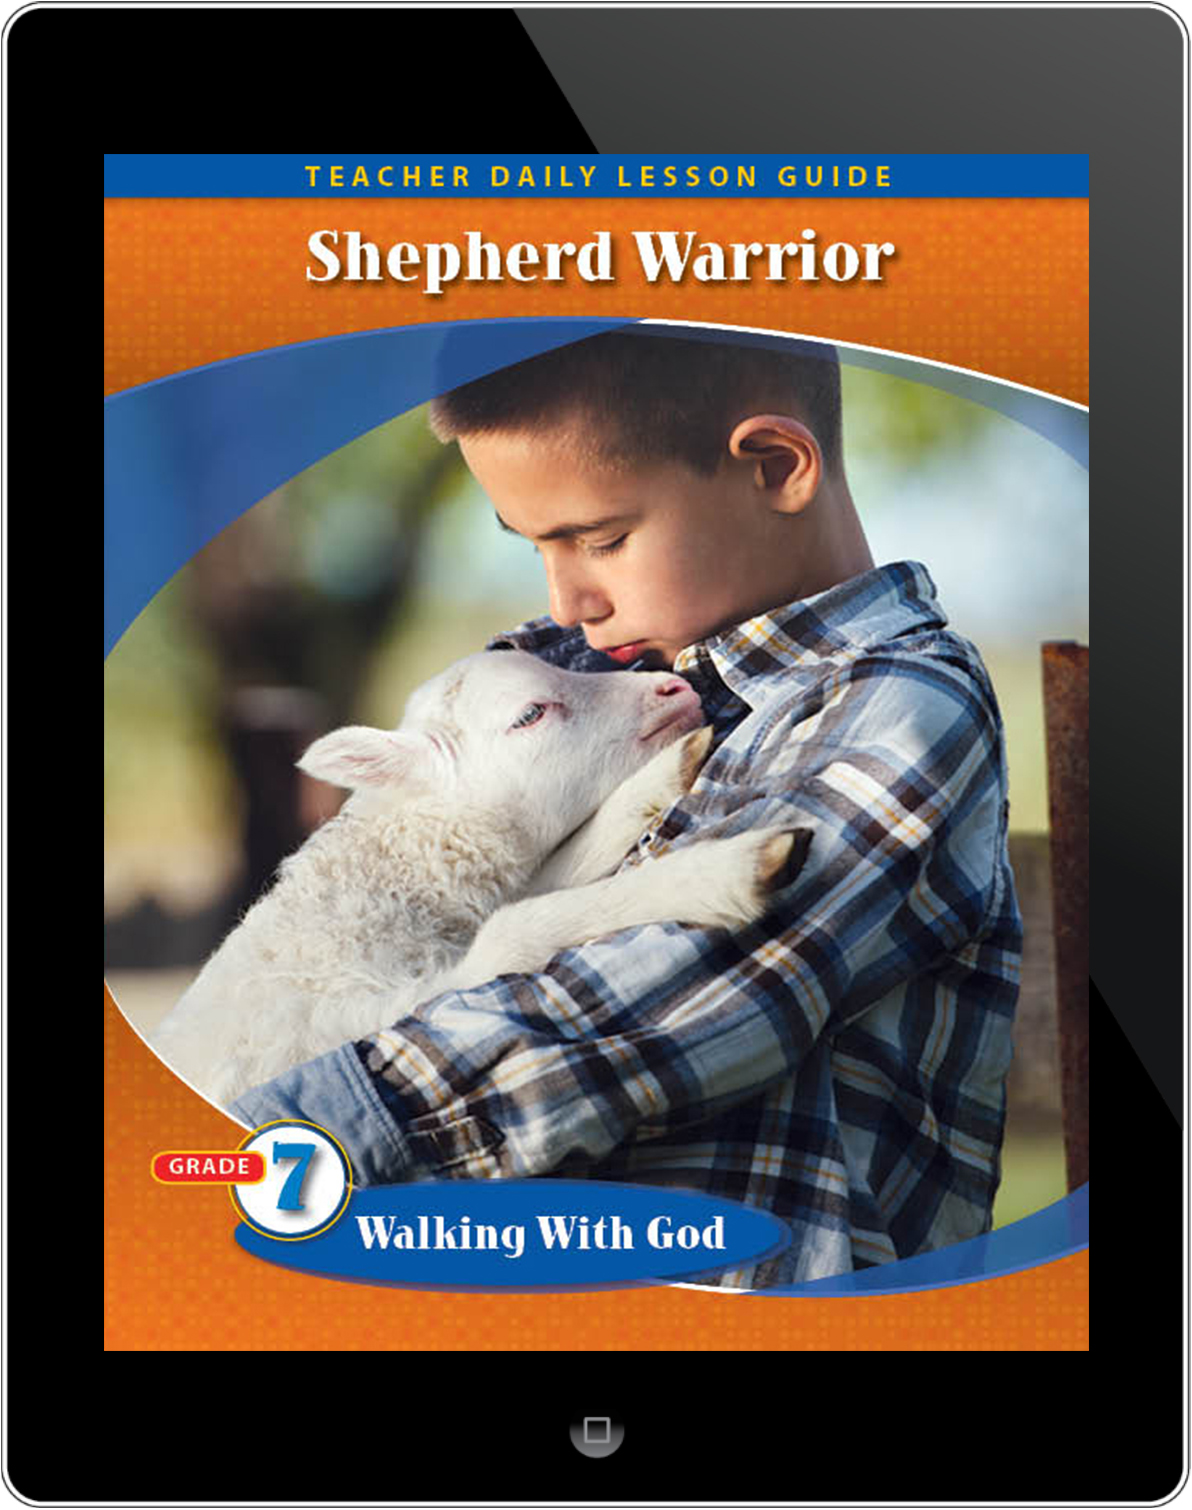 Pathways2.0 Grade 7 Walking with God Unit: Shepherd Warrior Daily Lesson Guide 5 Year License